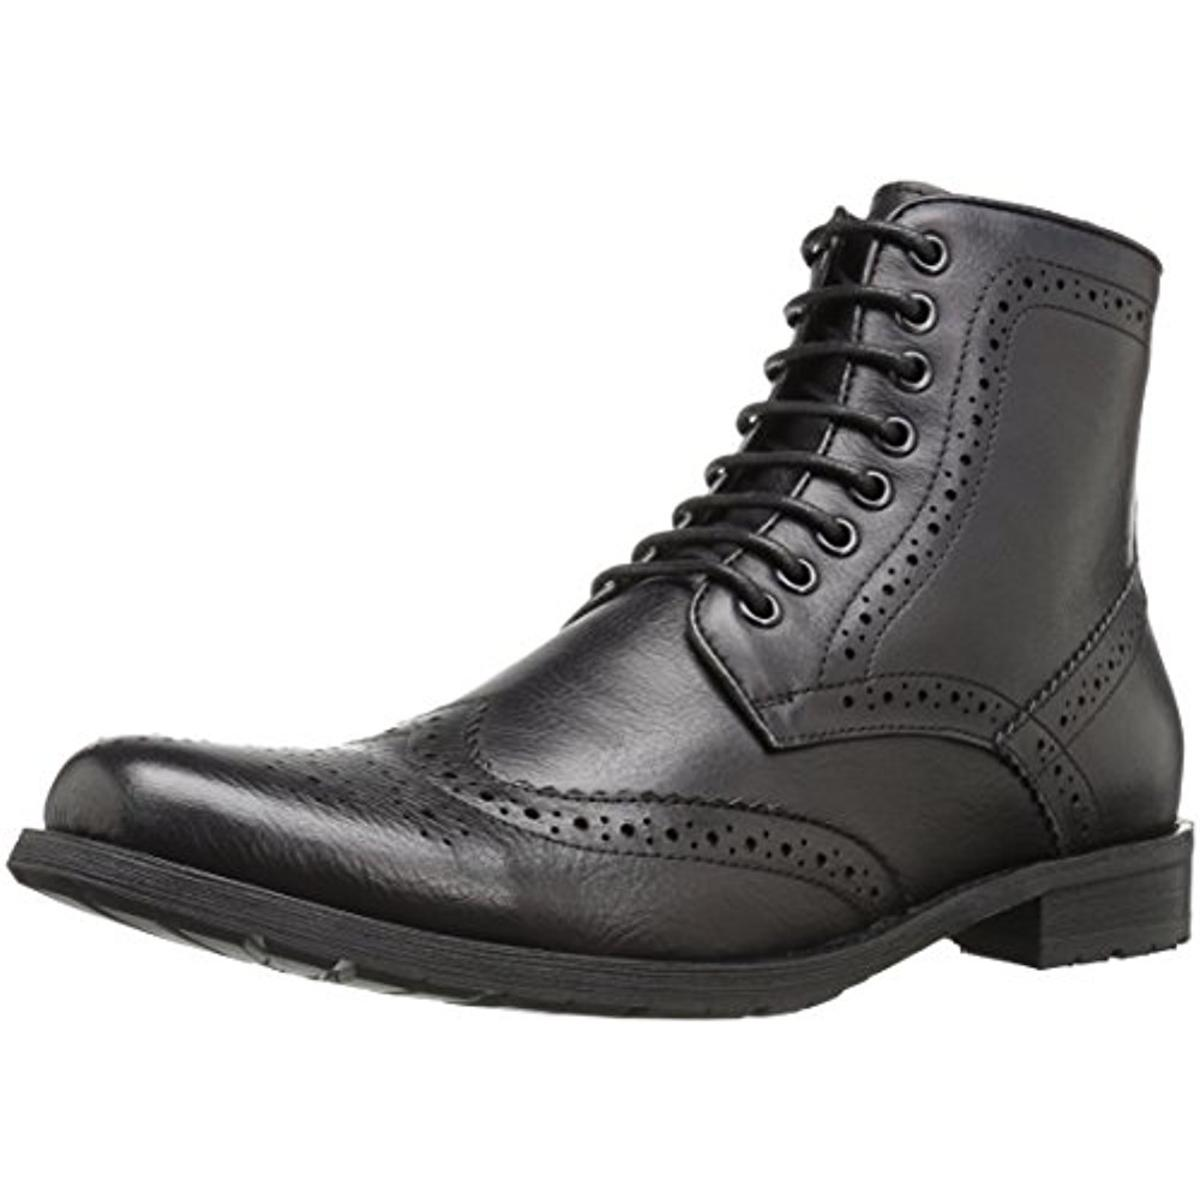 English Laundry Mens Barbican Leather Wingtip Oxford Boots